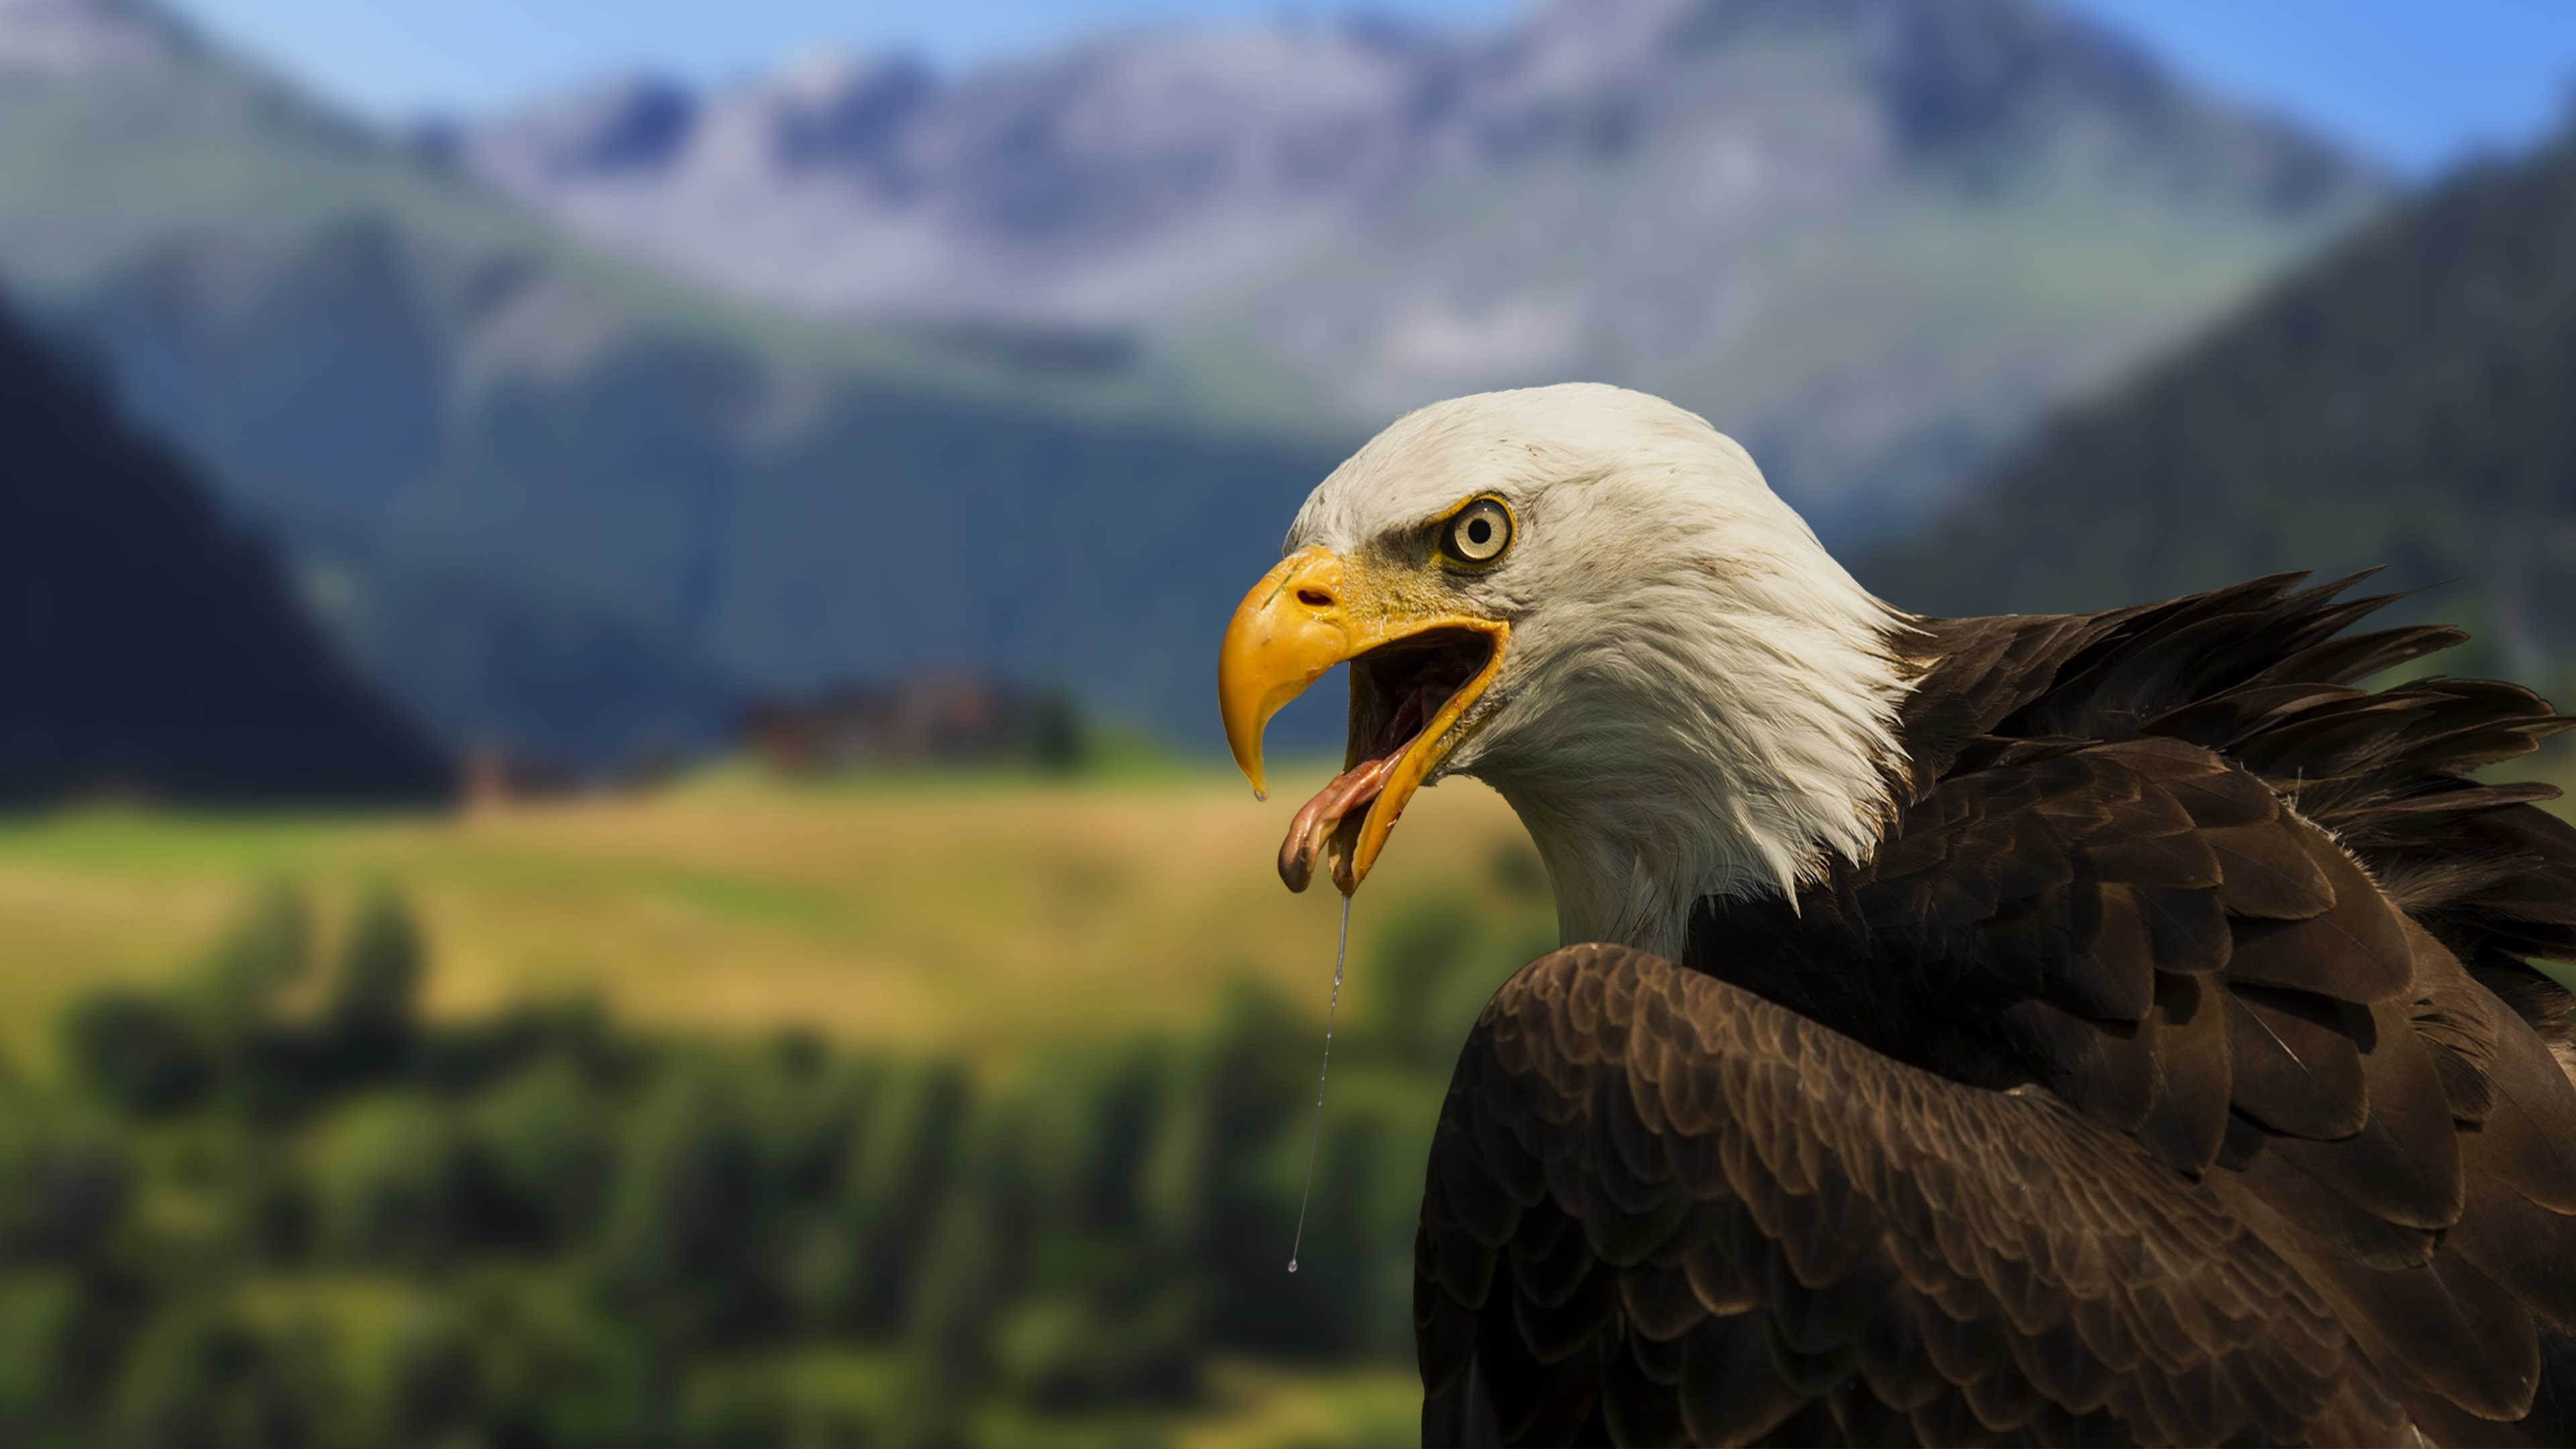 Bald Eagle 4K Wallpaper Full 1080p Ultra HD Wallpapers 3840x2160